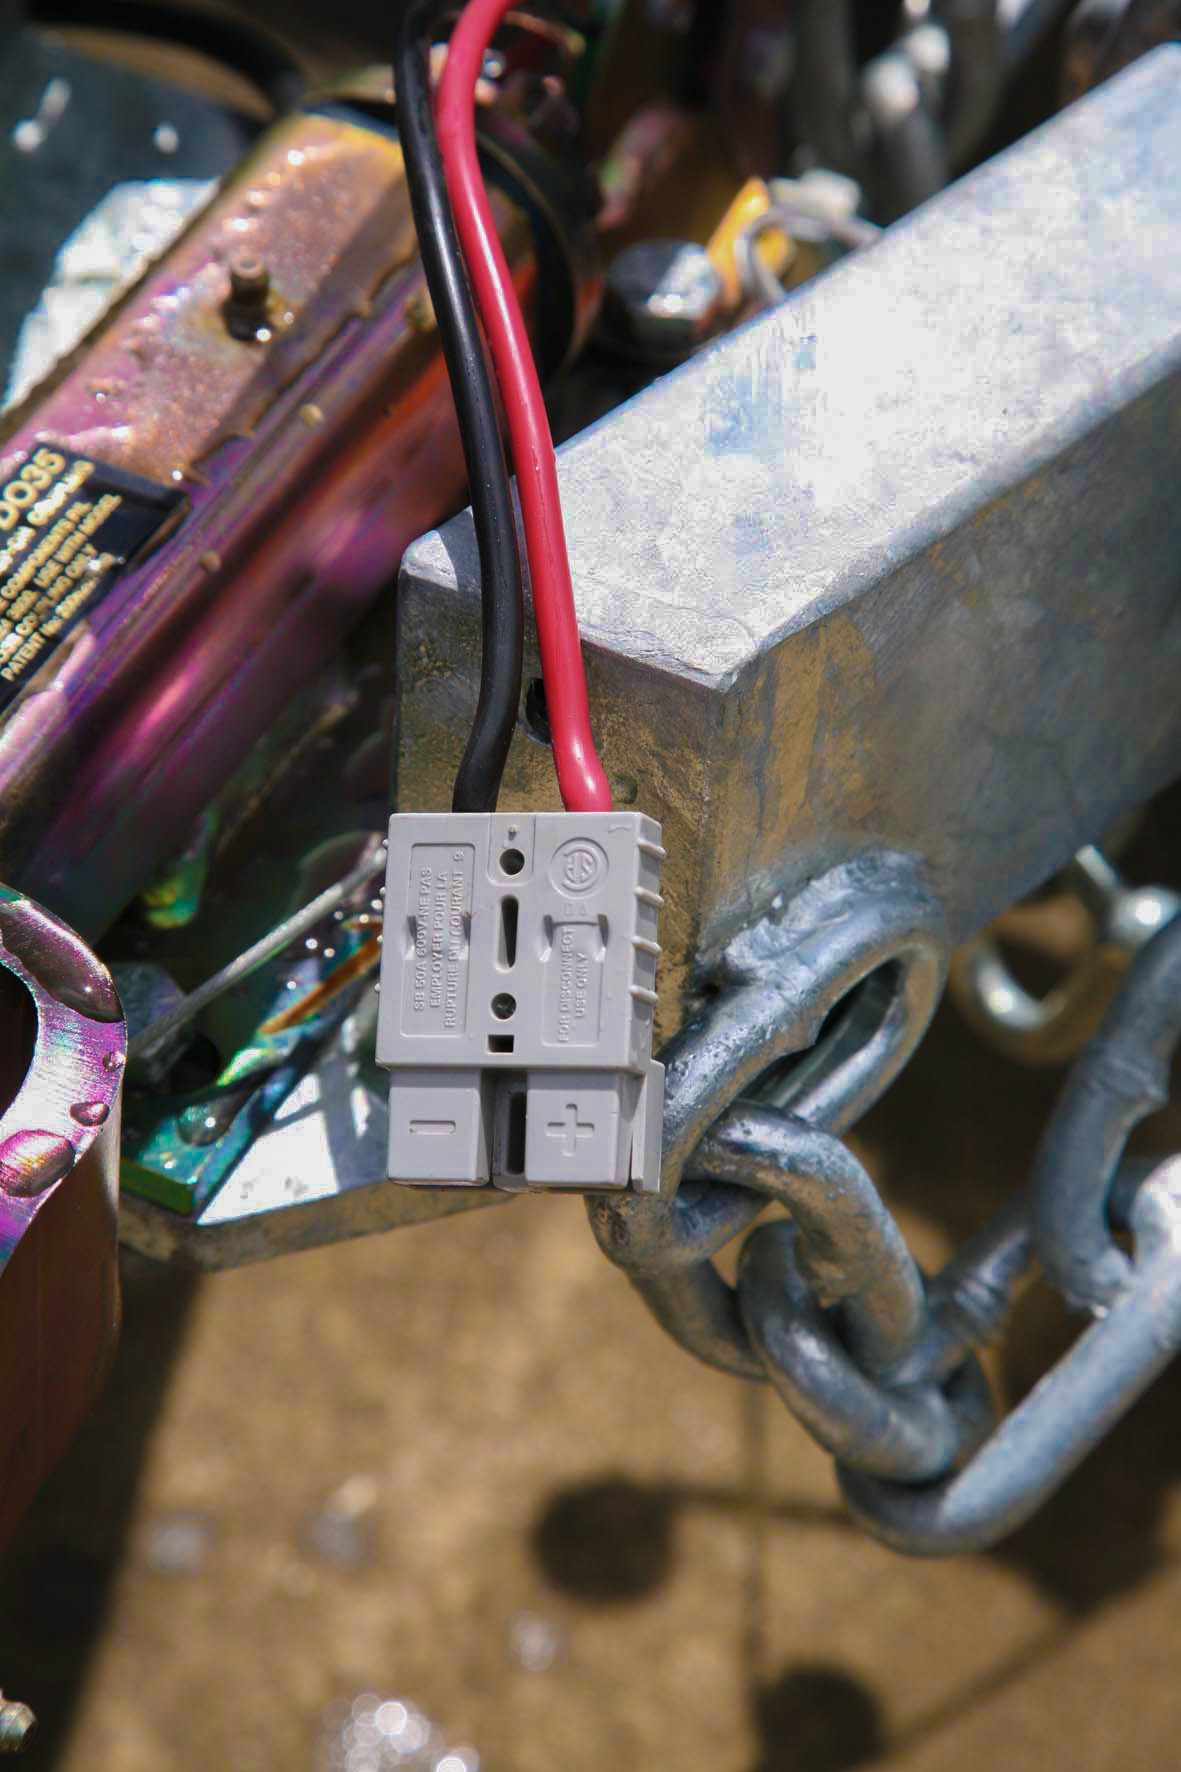 Caravan Electrical Systems Without A Hitch House Wiring Terminology Along With The Basic 12v System Used In Kingswood Viscount Era Long Gone Is Battery That Was Charged Only By Tow Vehicles Alternator